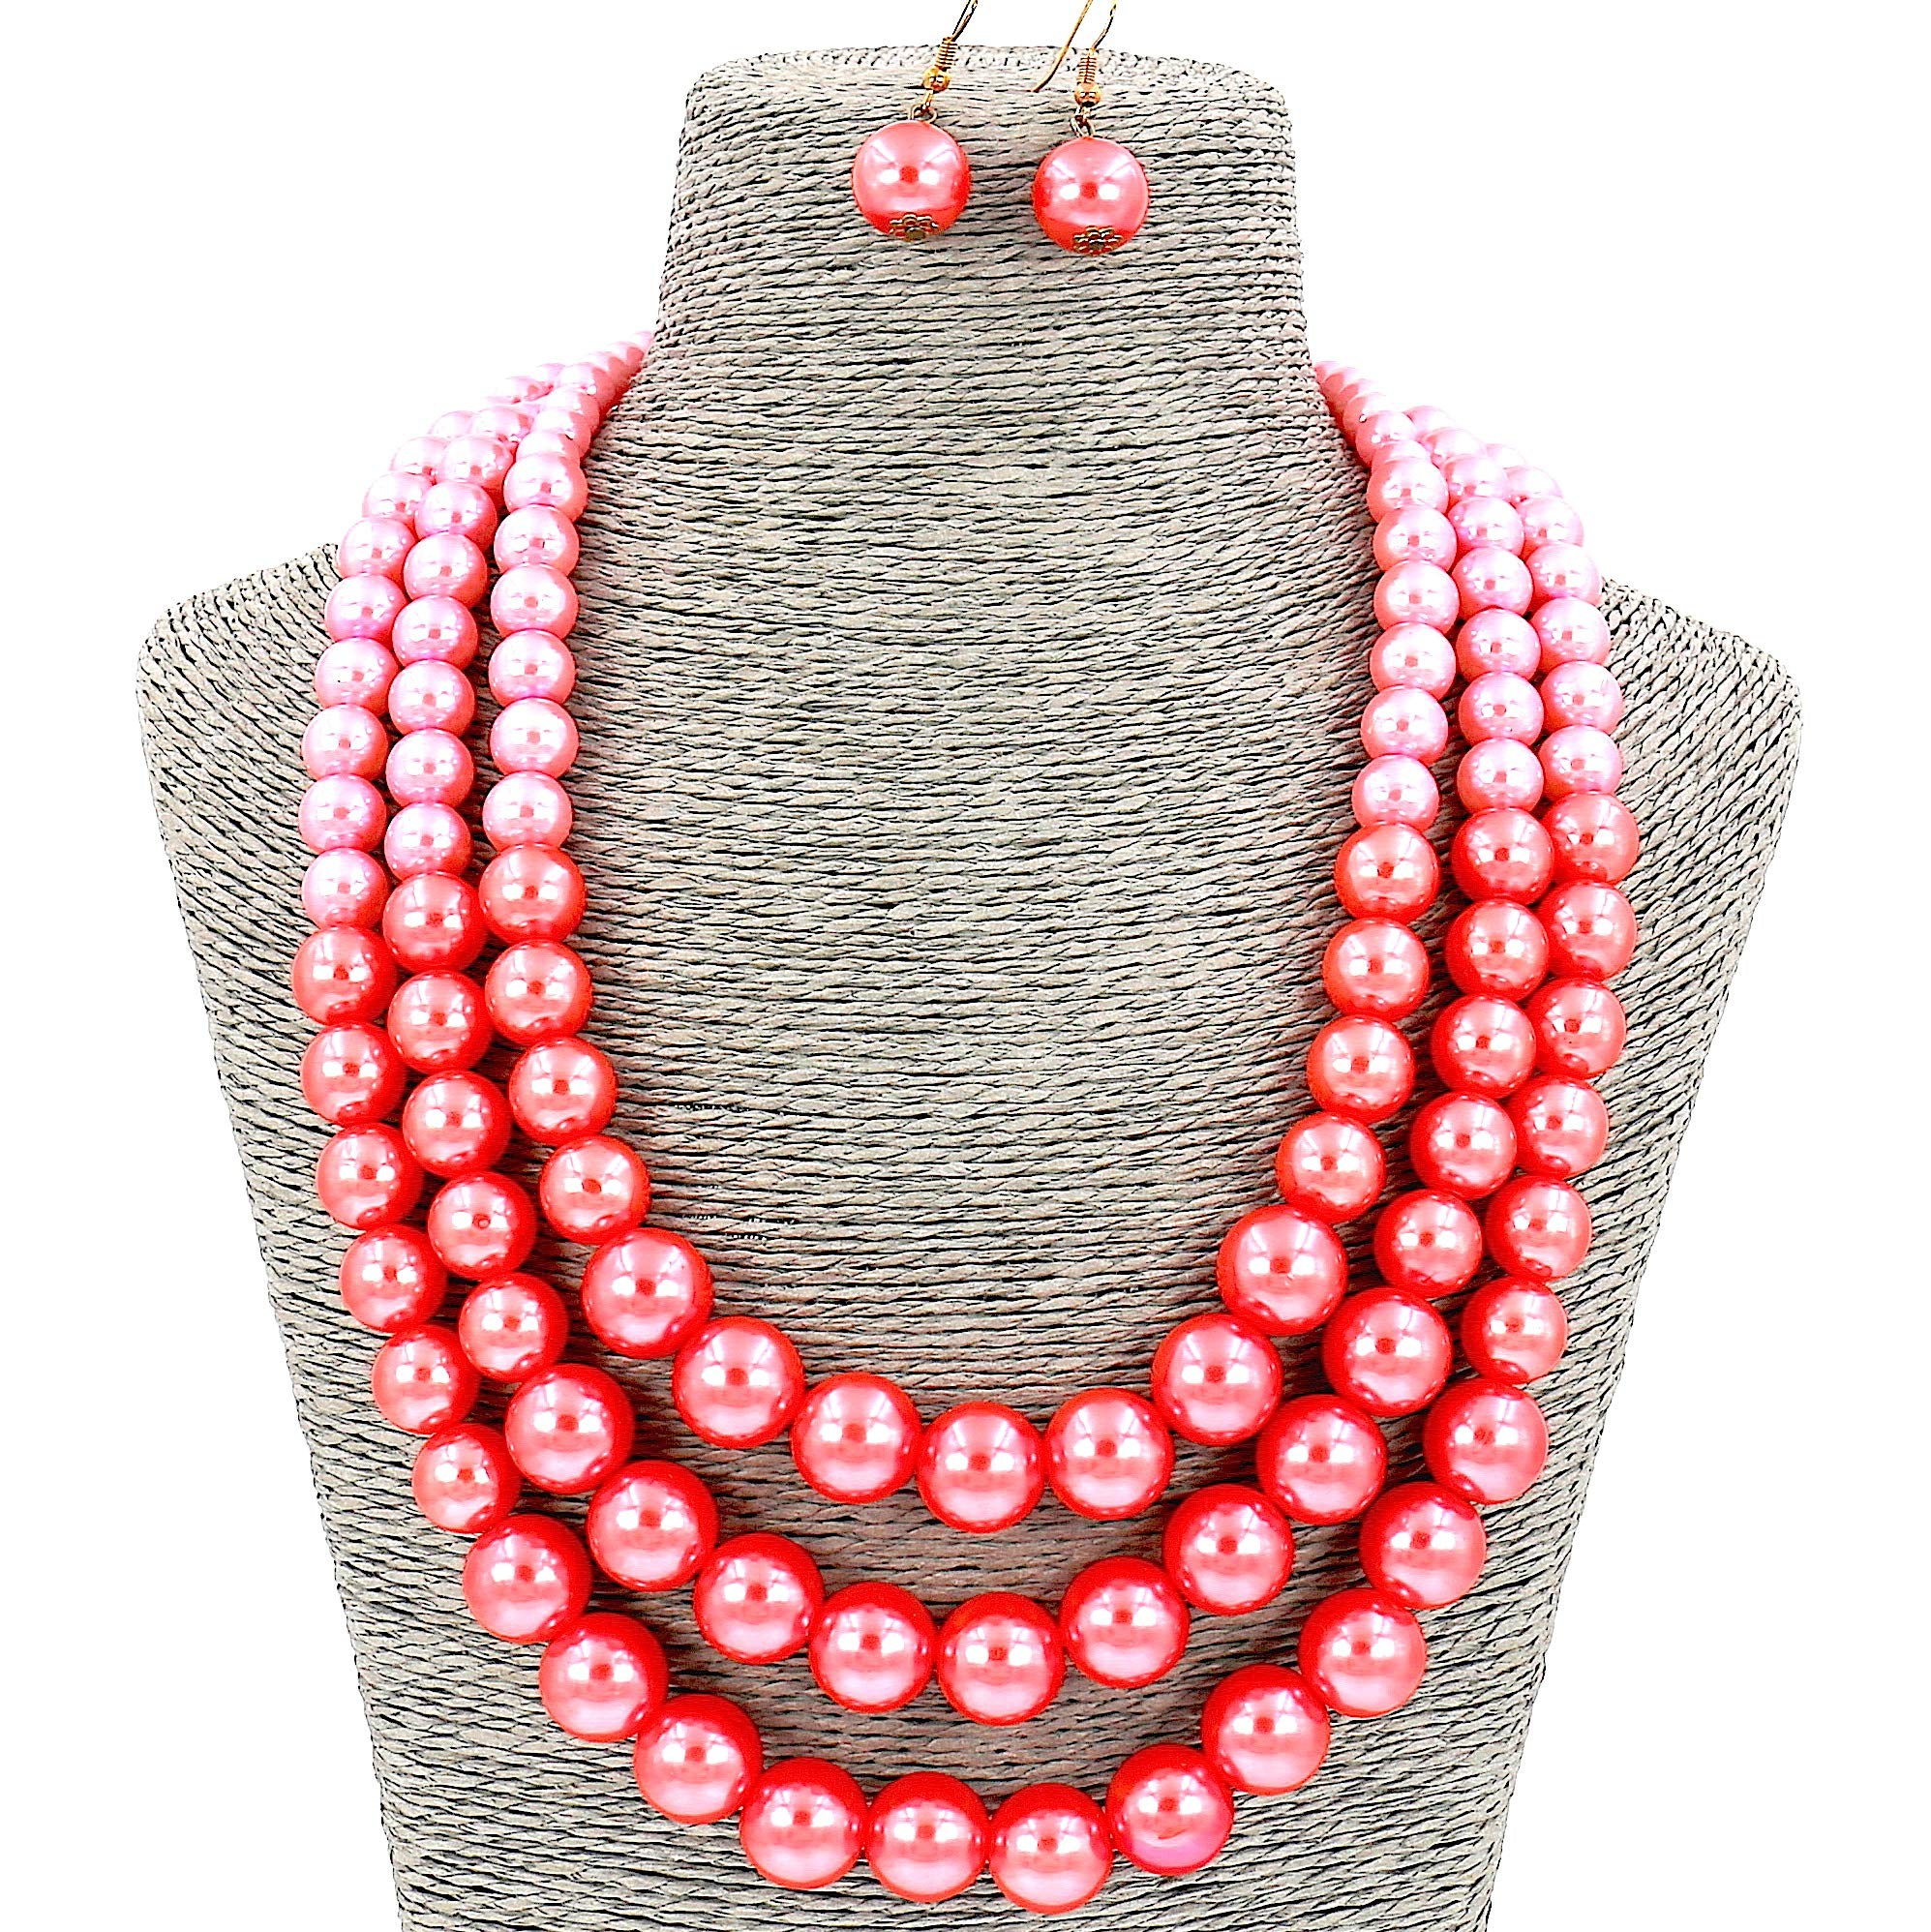 Lady Fashion Jewelry Girls Pink Simulated Pearl Chain Layered Women Necklace and Earrings Set